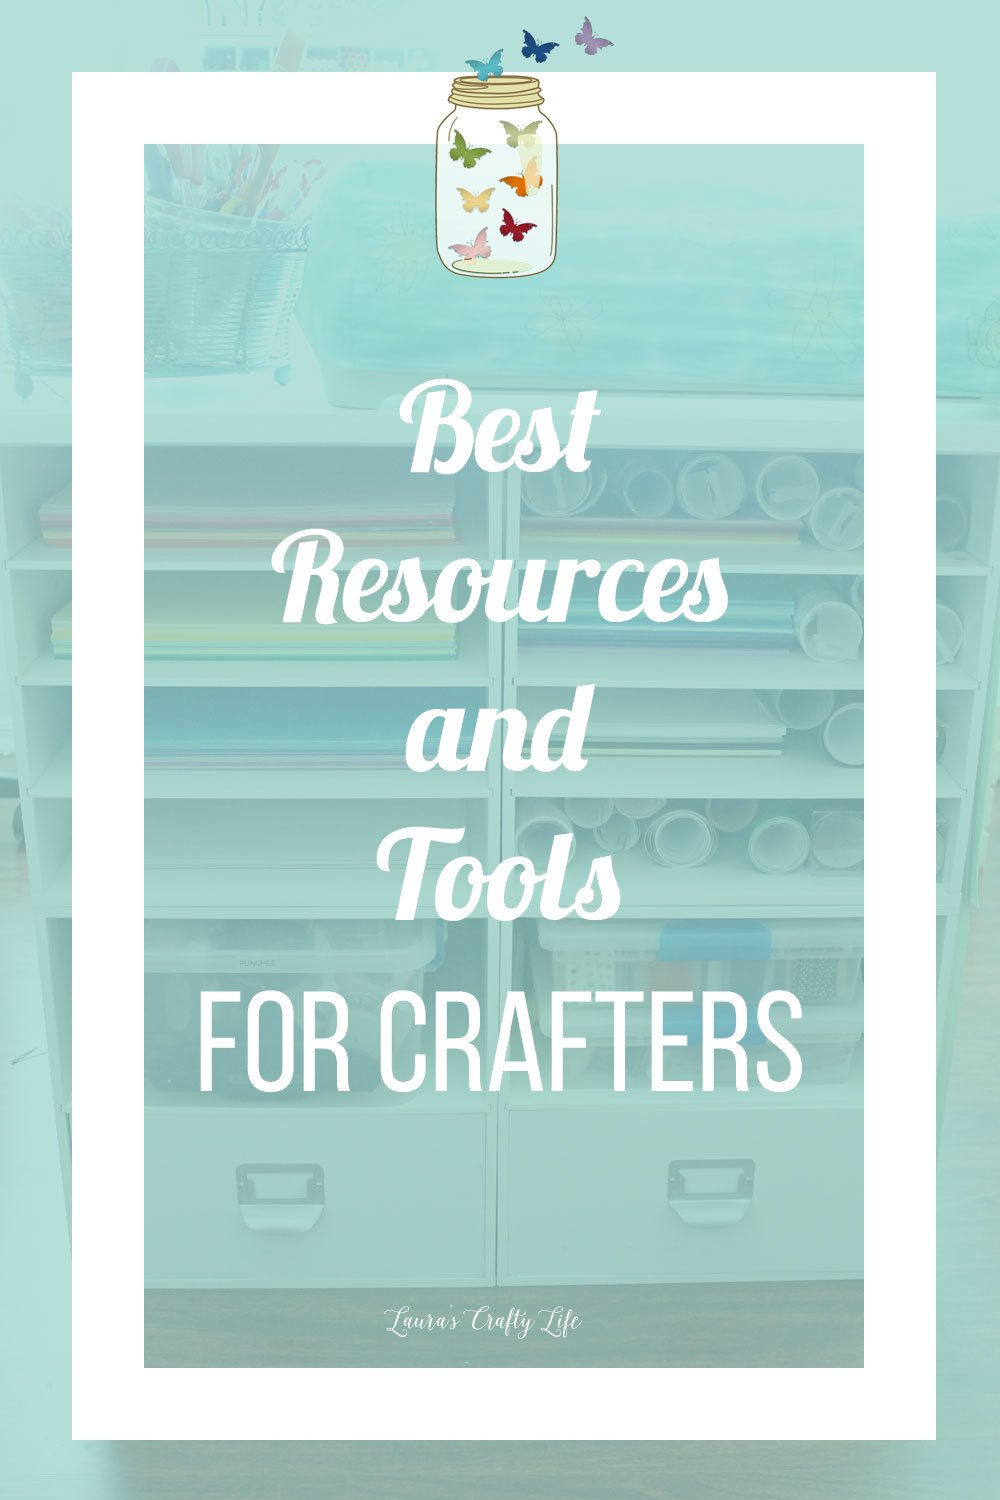 Best resources and tools for crafters